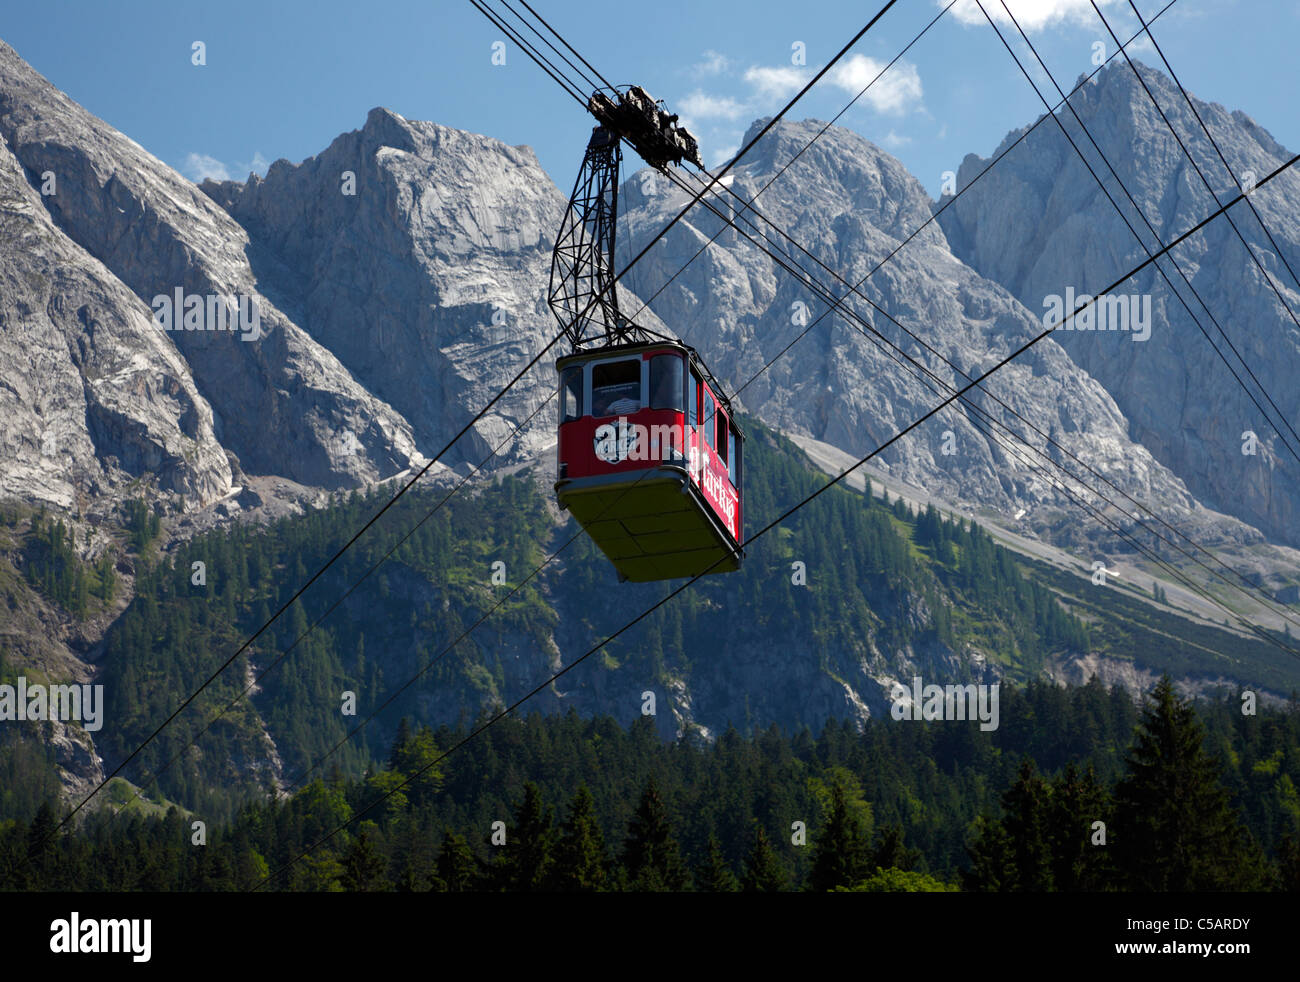 a-mountain-gondola-on-its-way-from-the-c